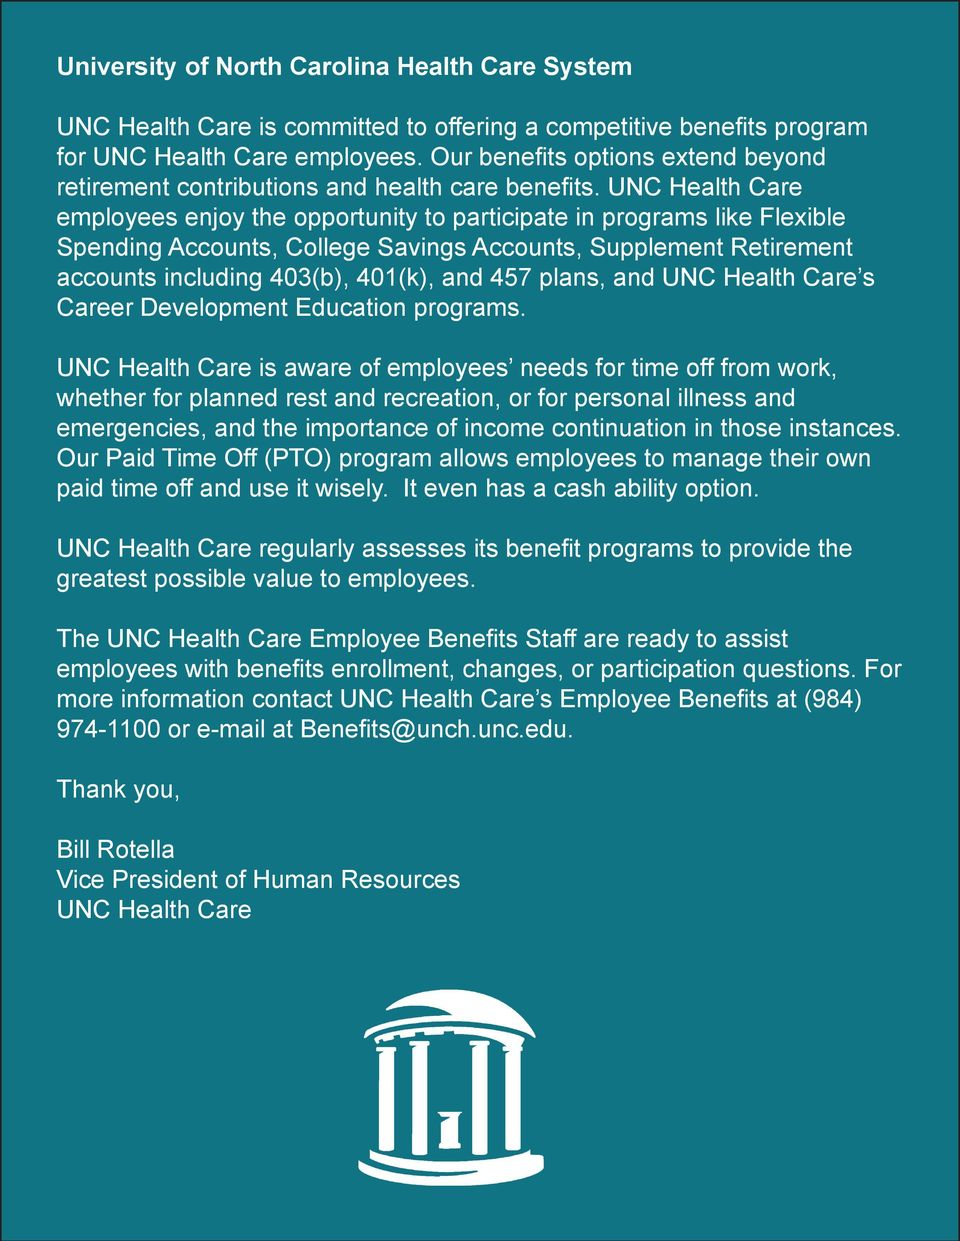 UNC Health Care employees enjoy the opportunity to participate in programs like Flexible Spending Accounts, College Savings Accounts, Supplement Retirement accounts including 403(b), 401(k), and 457